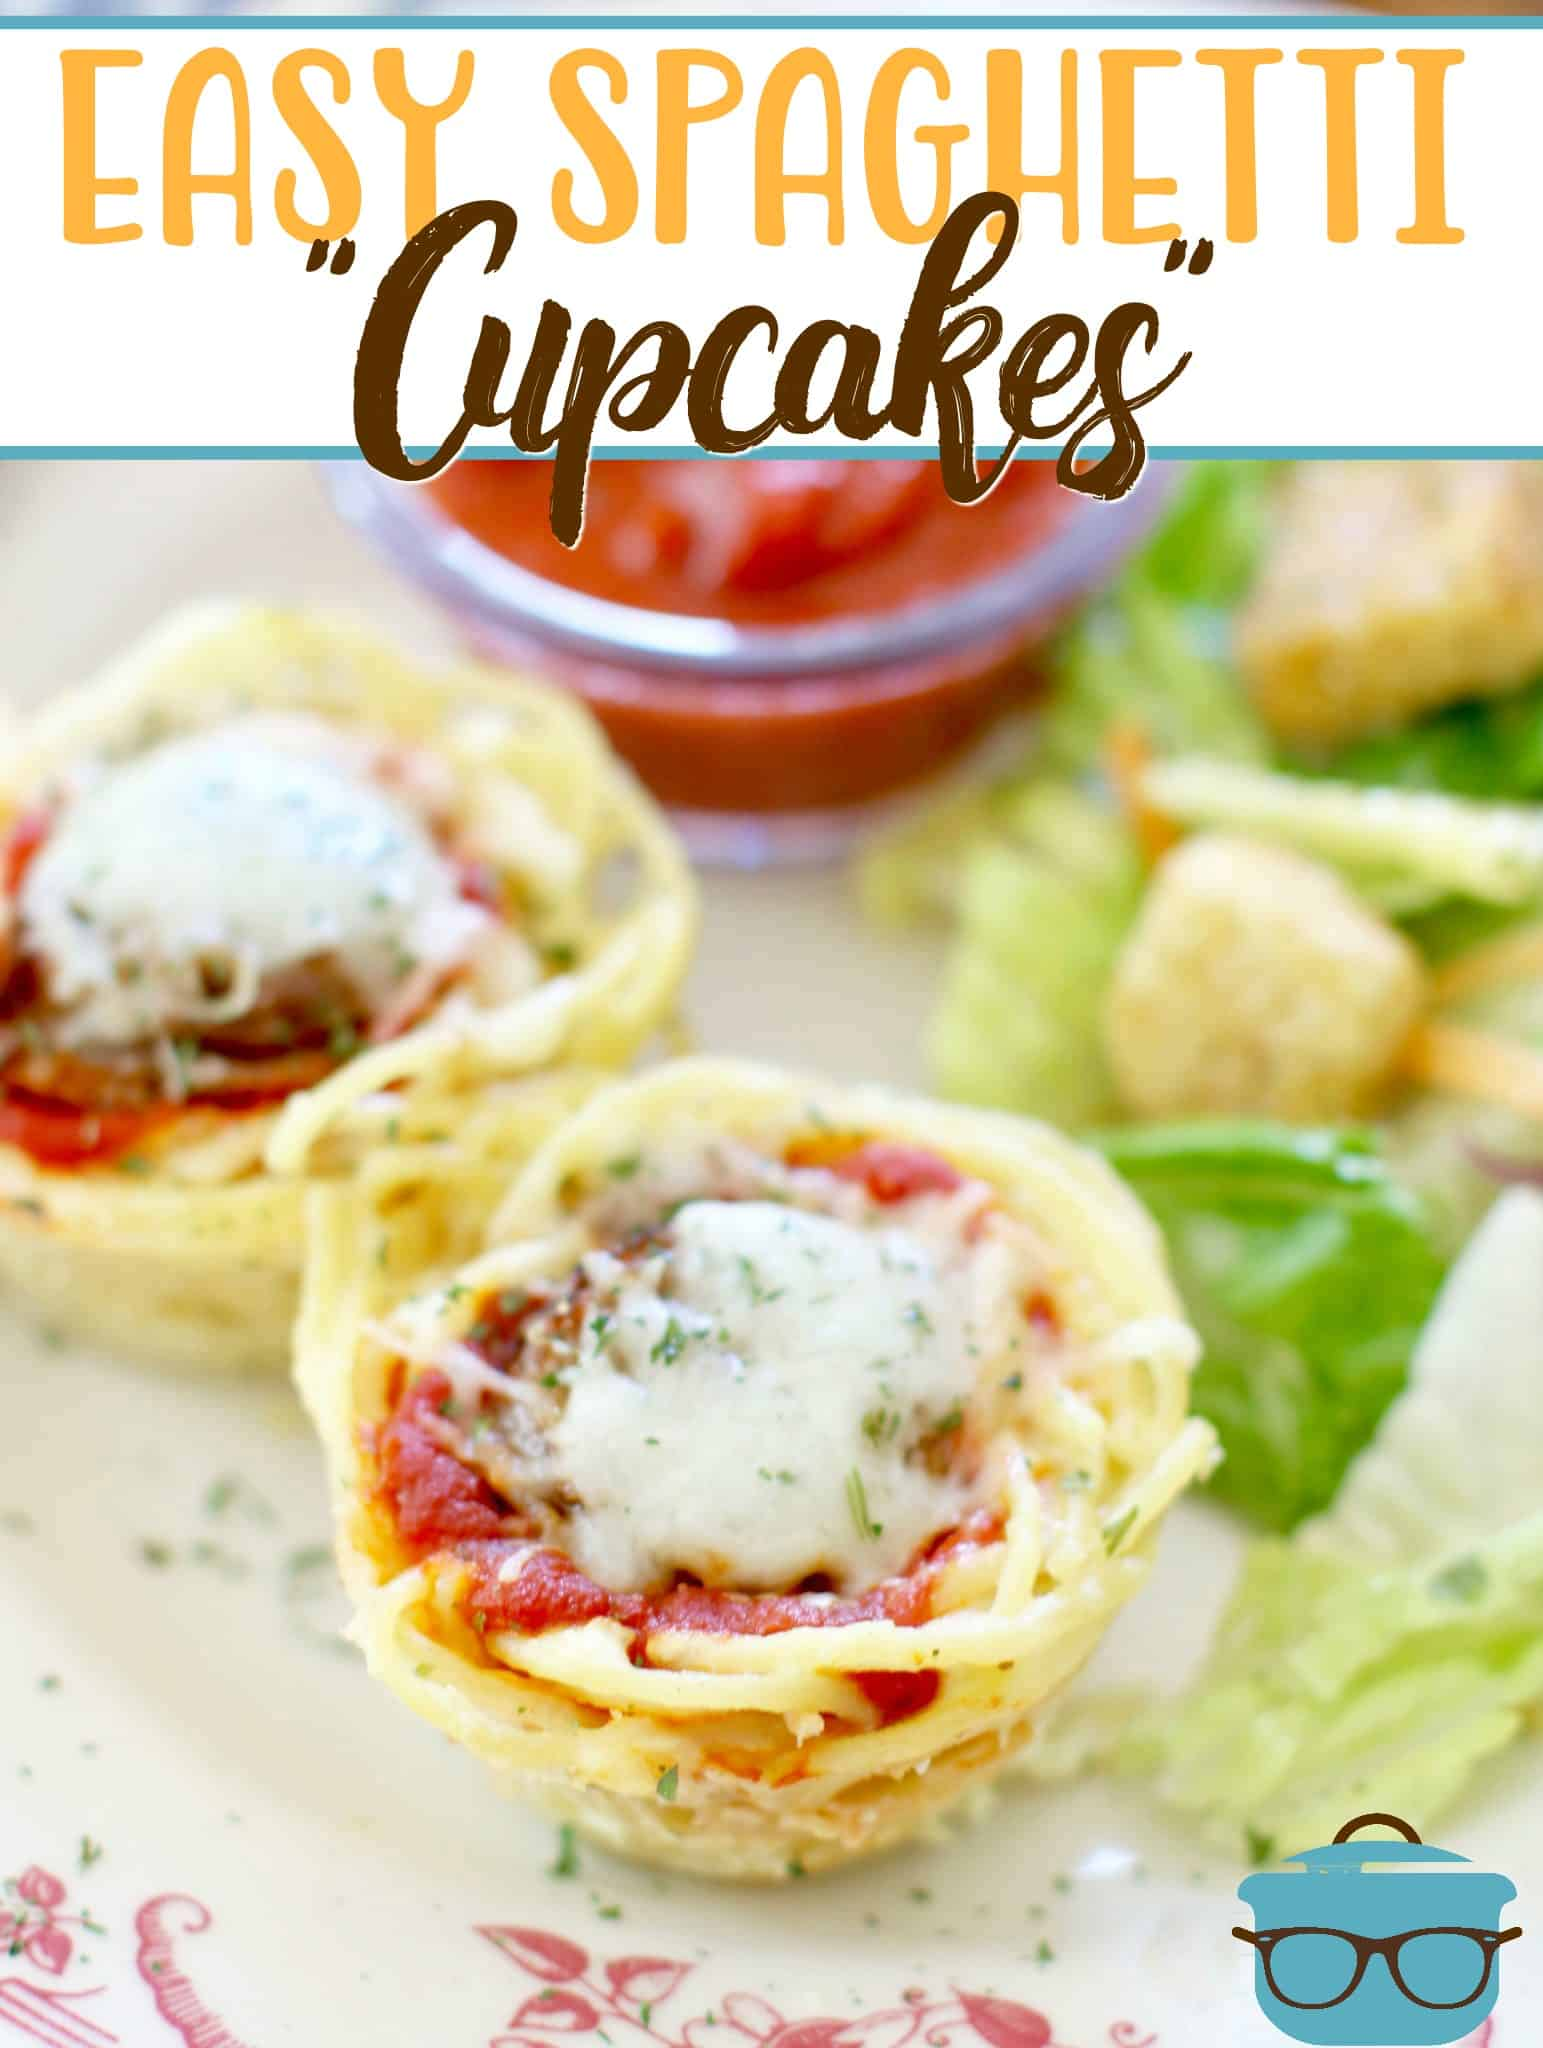 Easy Sausage Spaghetti Cupcakes recipe from The Country Cook